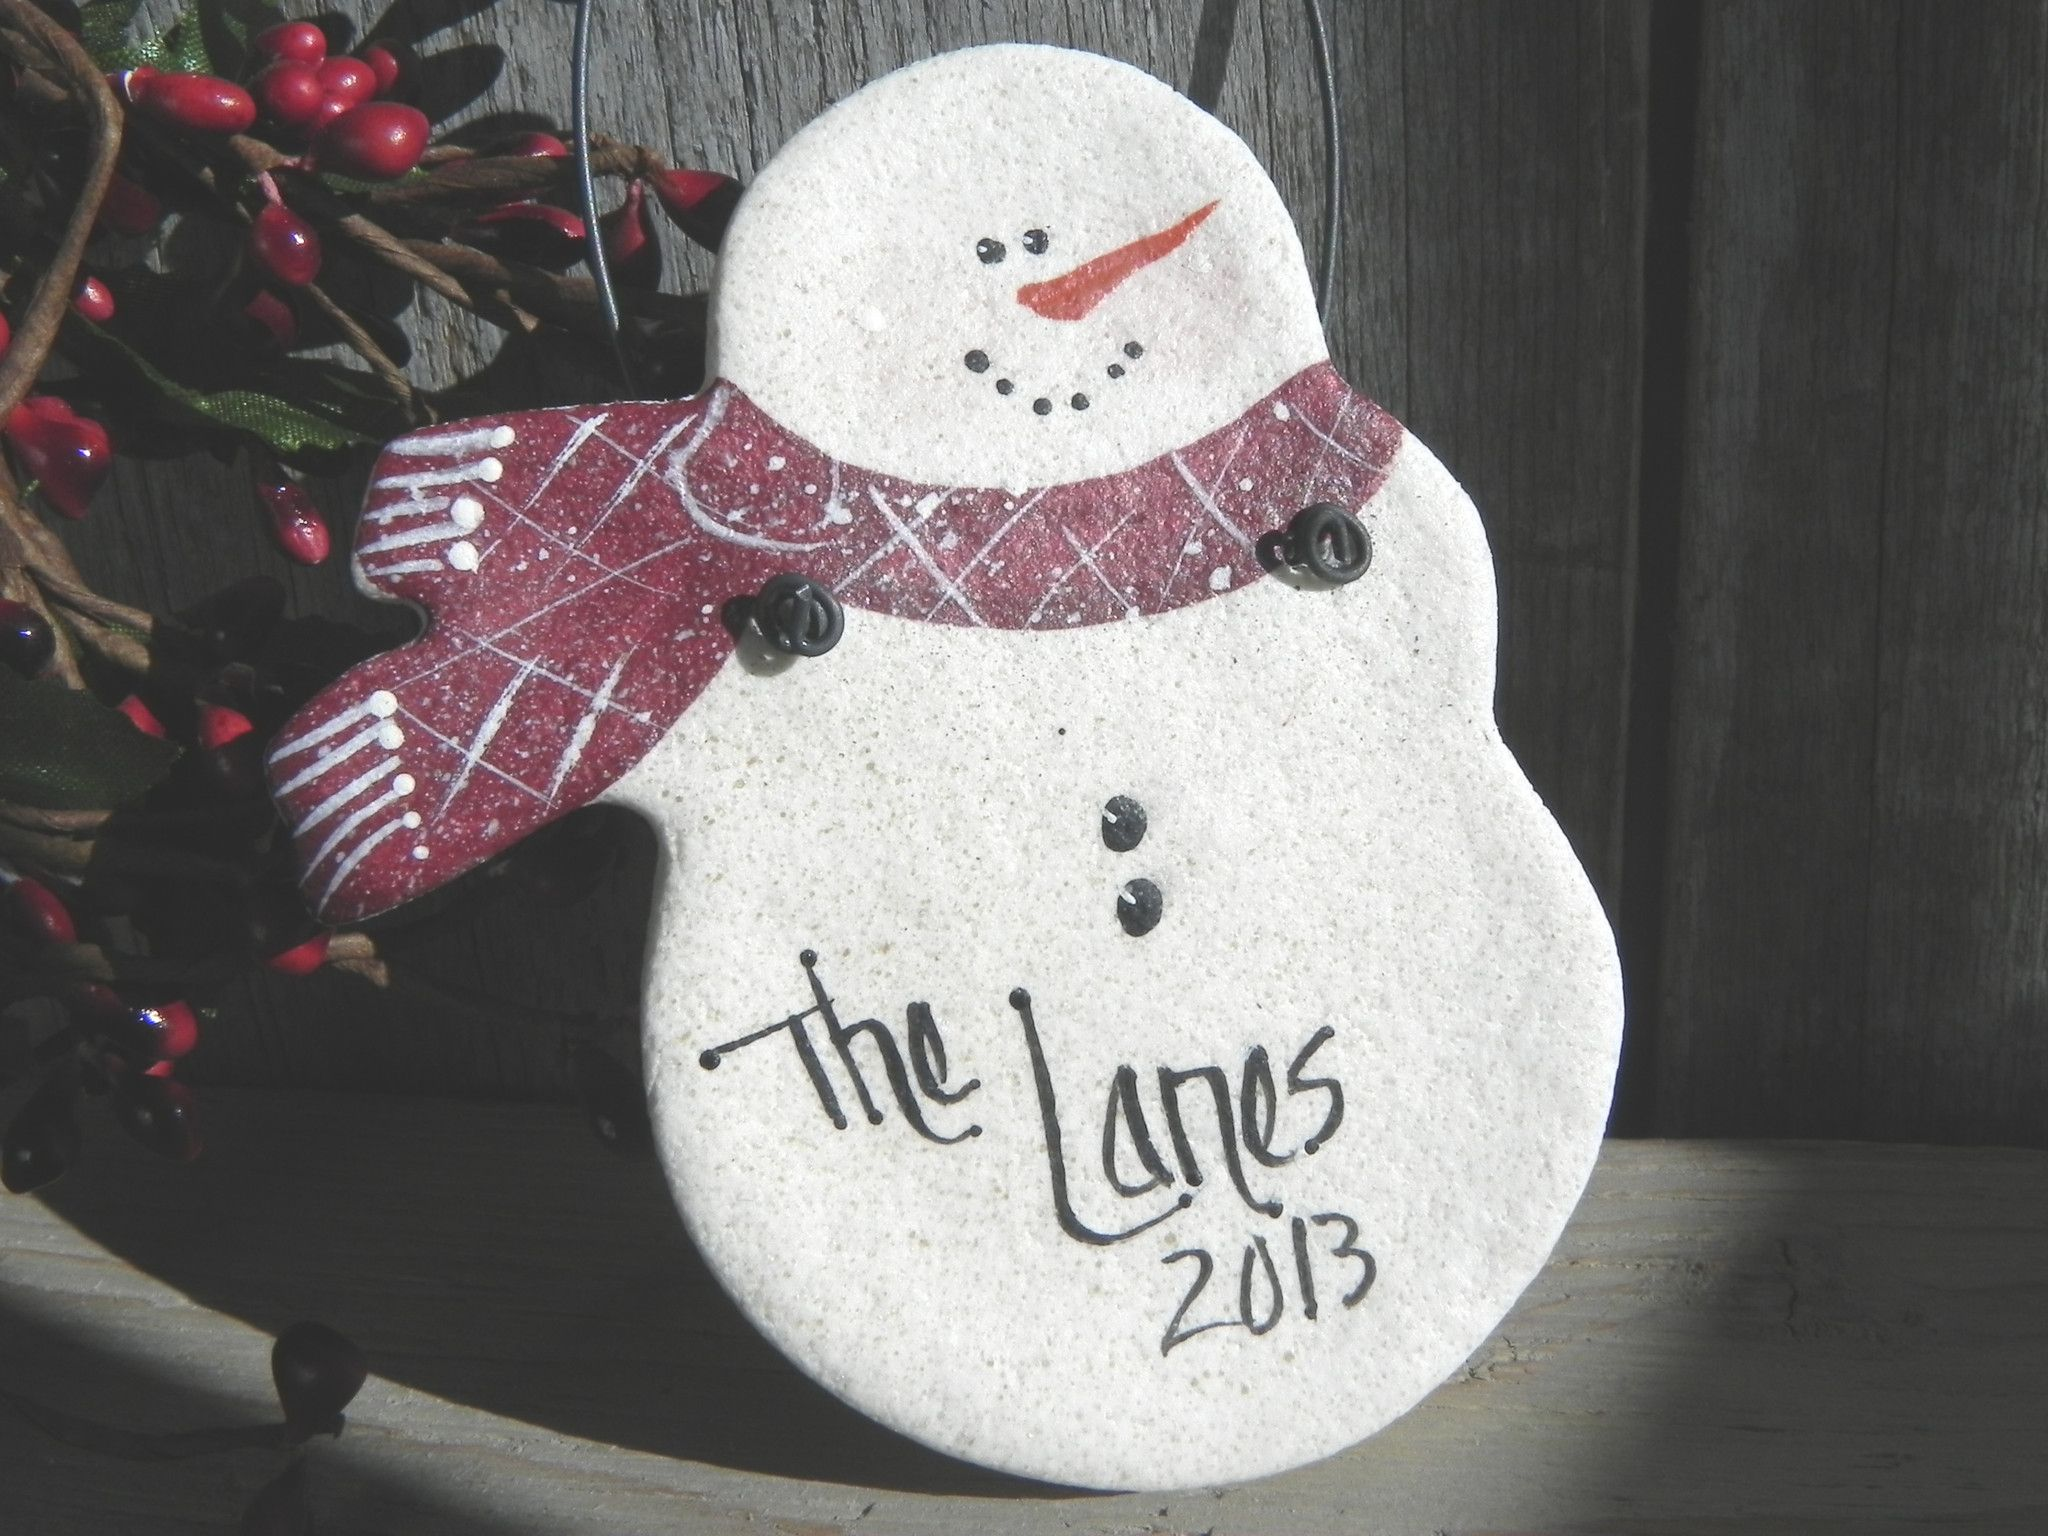 Personalized Snowman Gift Salt Dough Ornament Salt Dough Christmas Ornaments Diy Christmas Ornaments Snowman Gifts